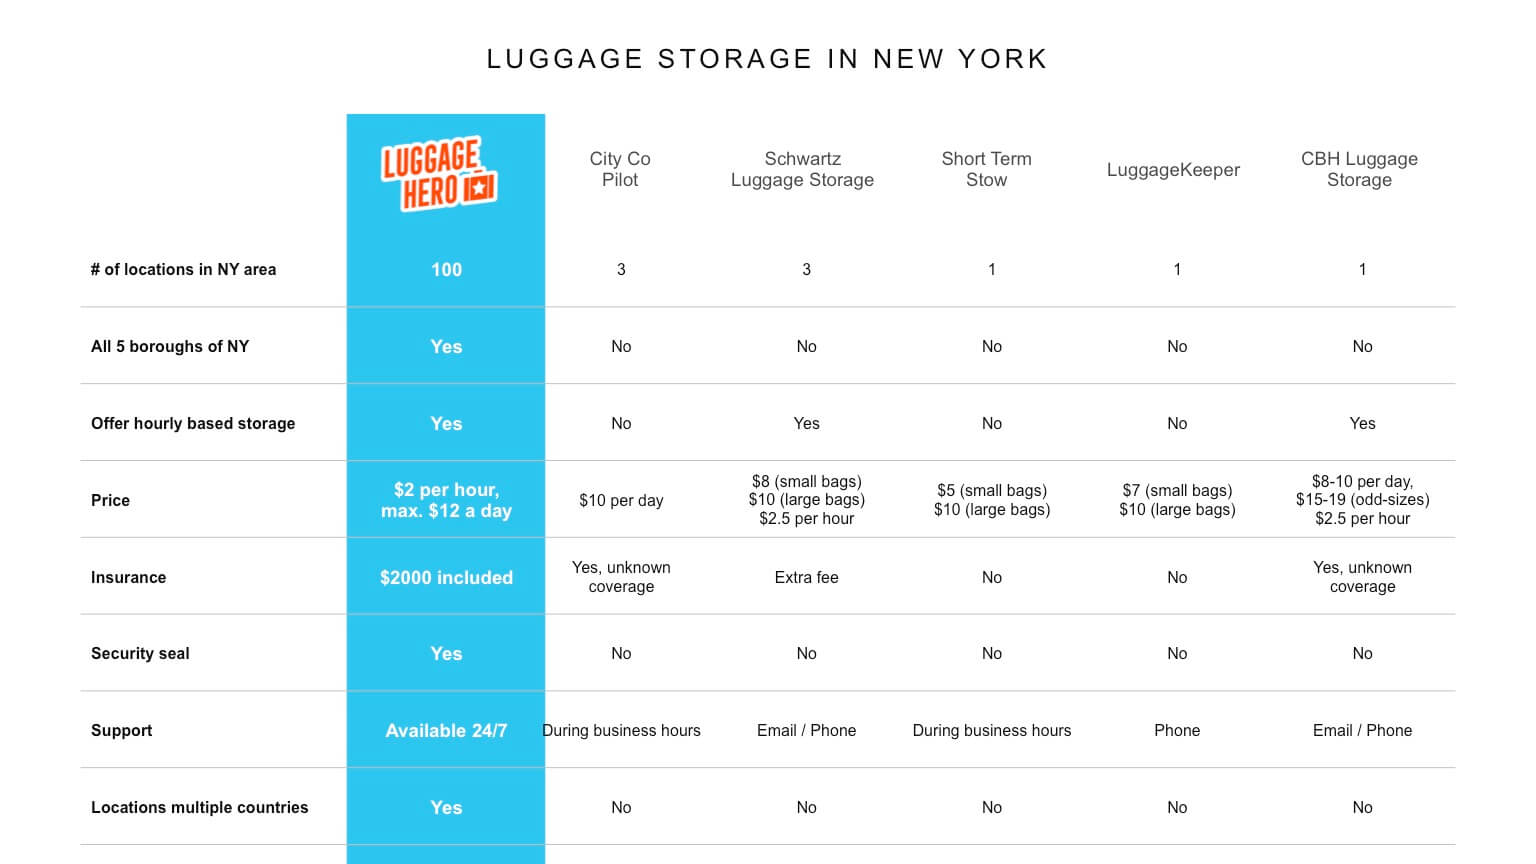 luggage storage options in London